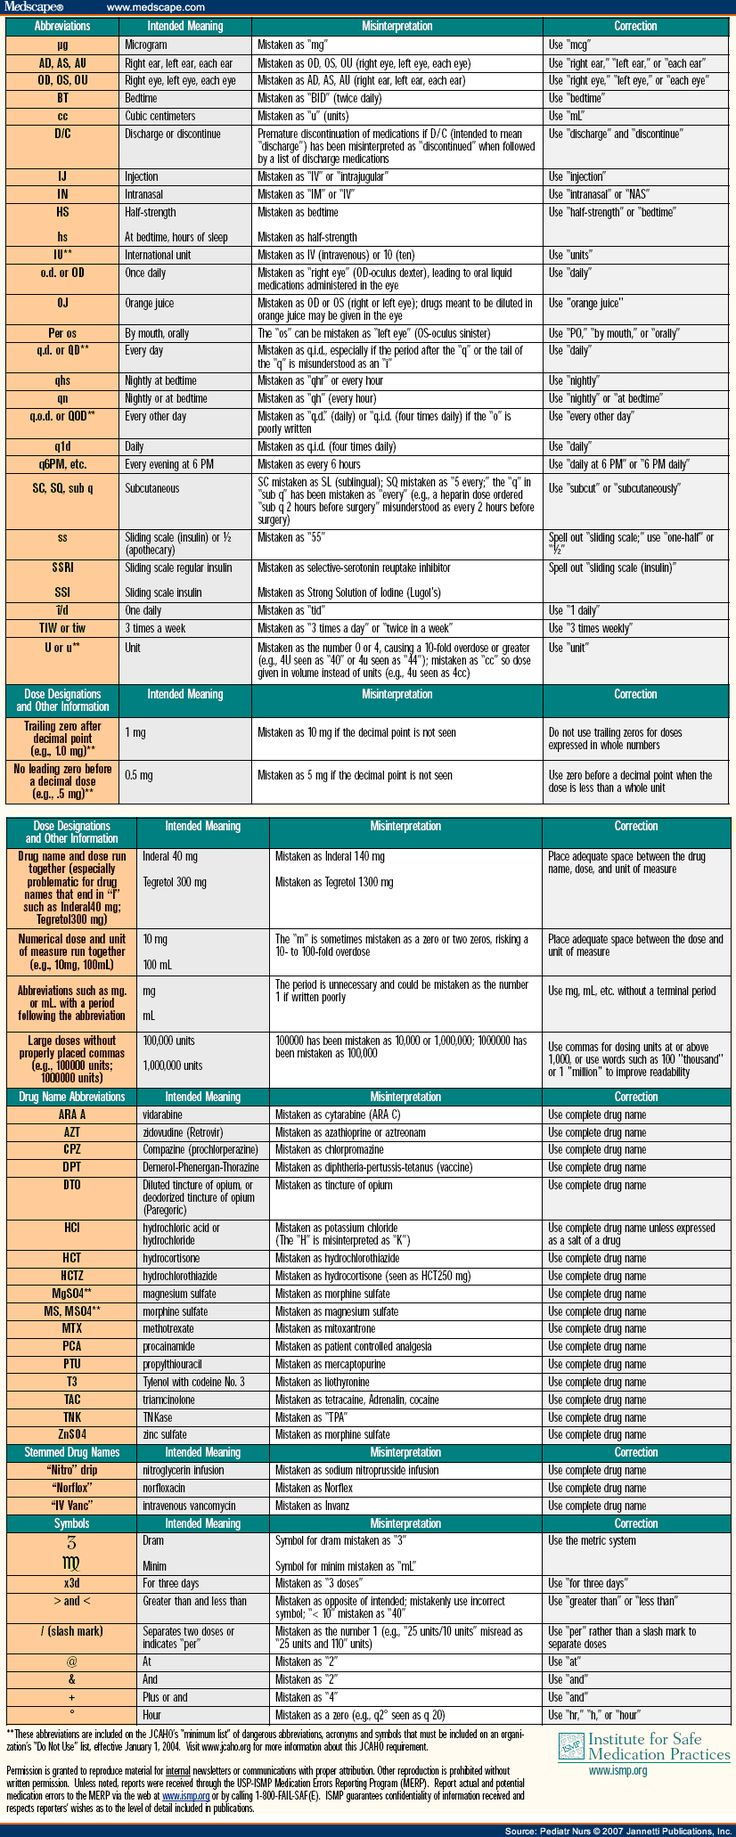 Medical billing and coding comparison